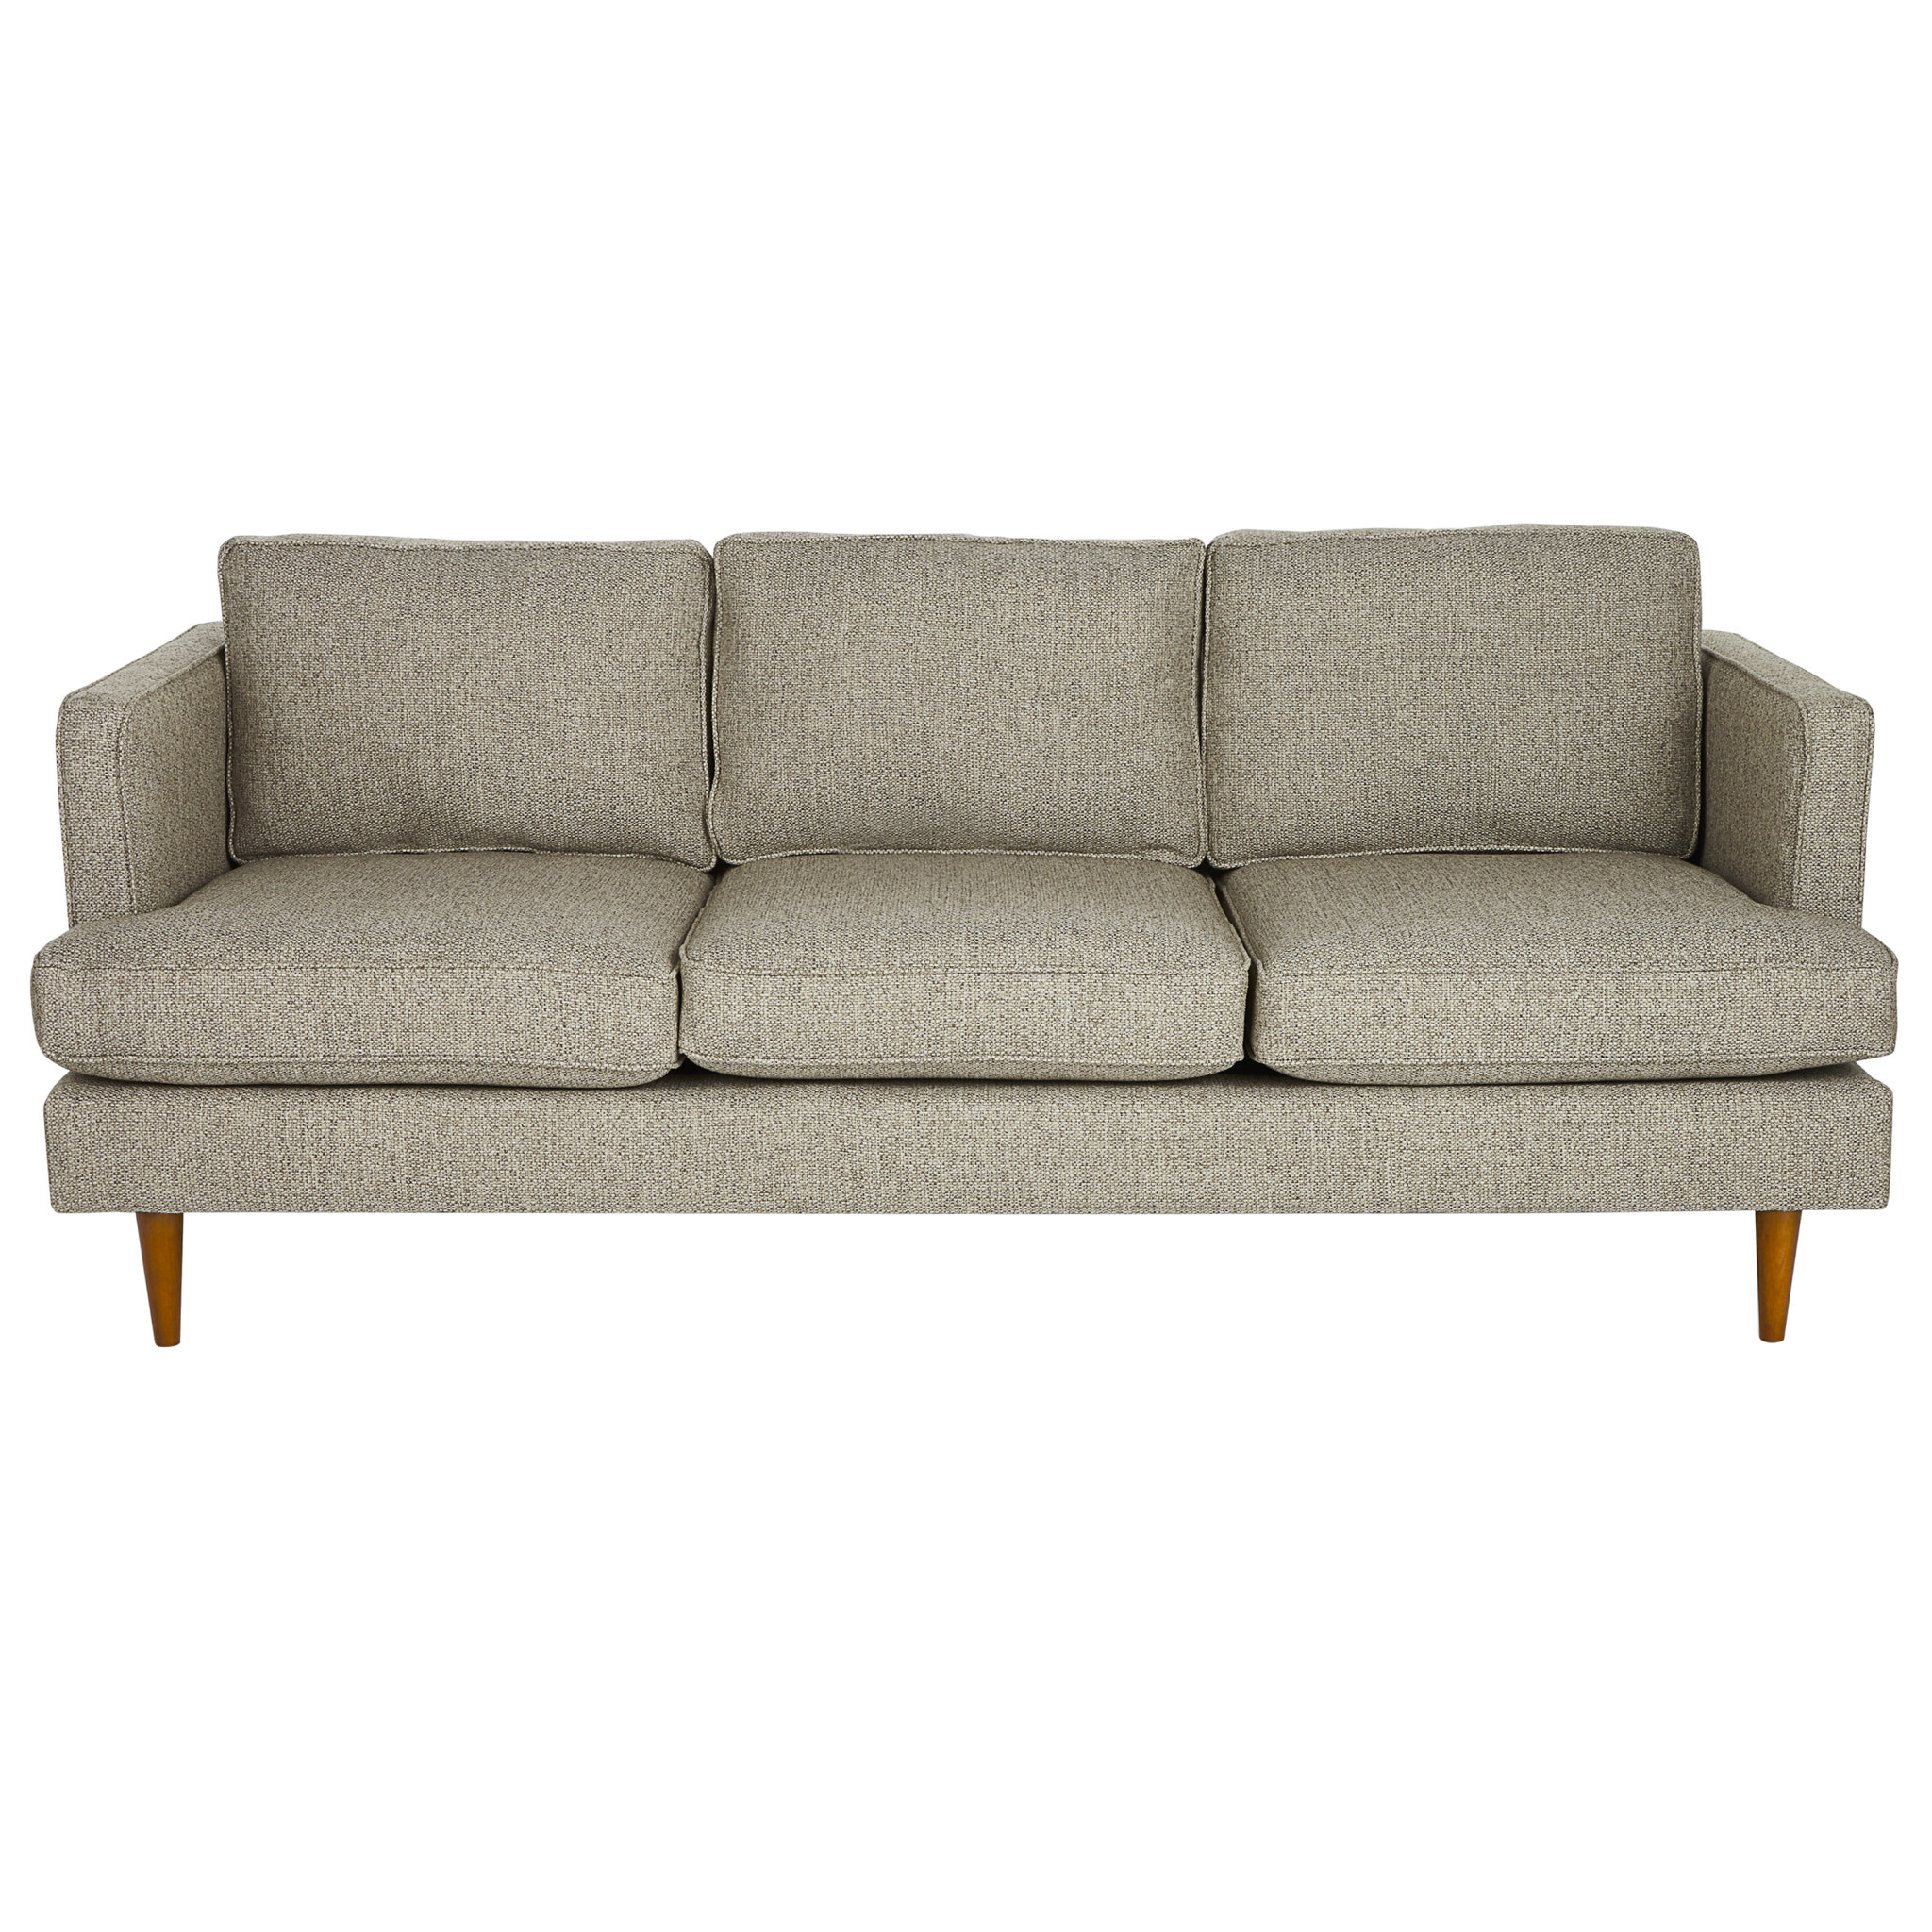 HOWSER SOFA - LINEN